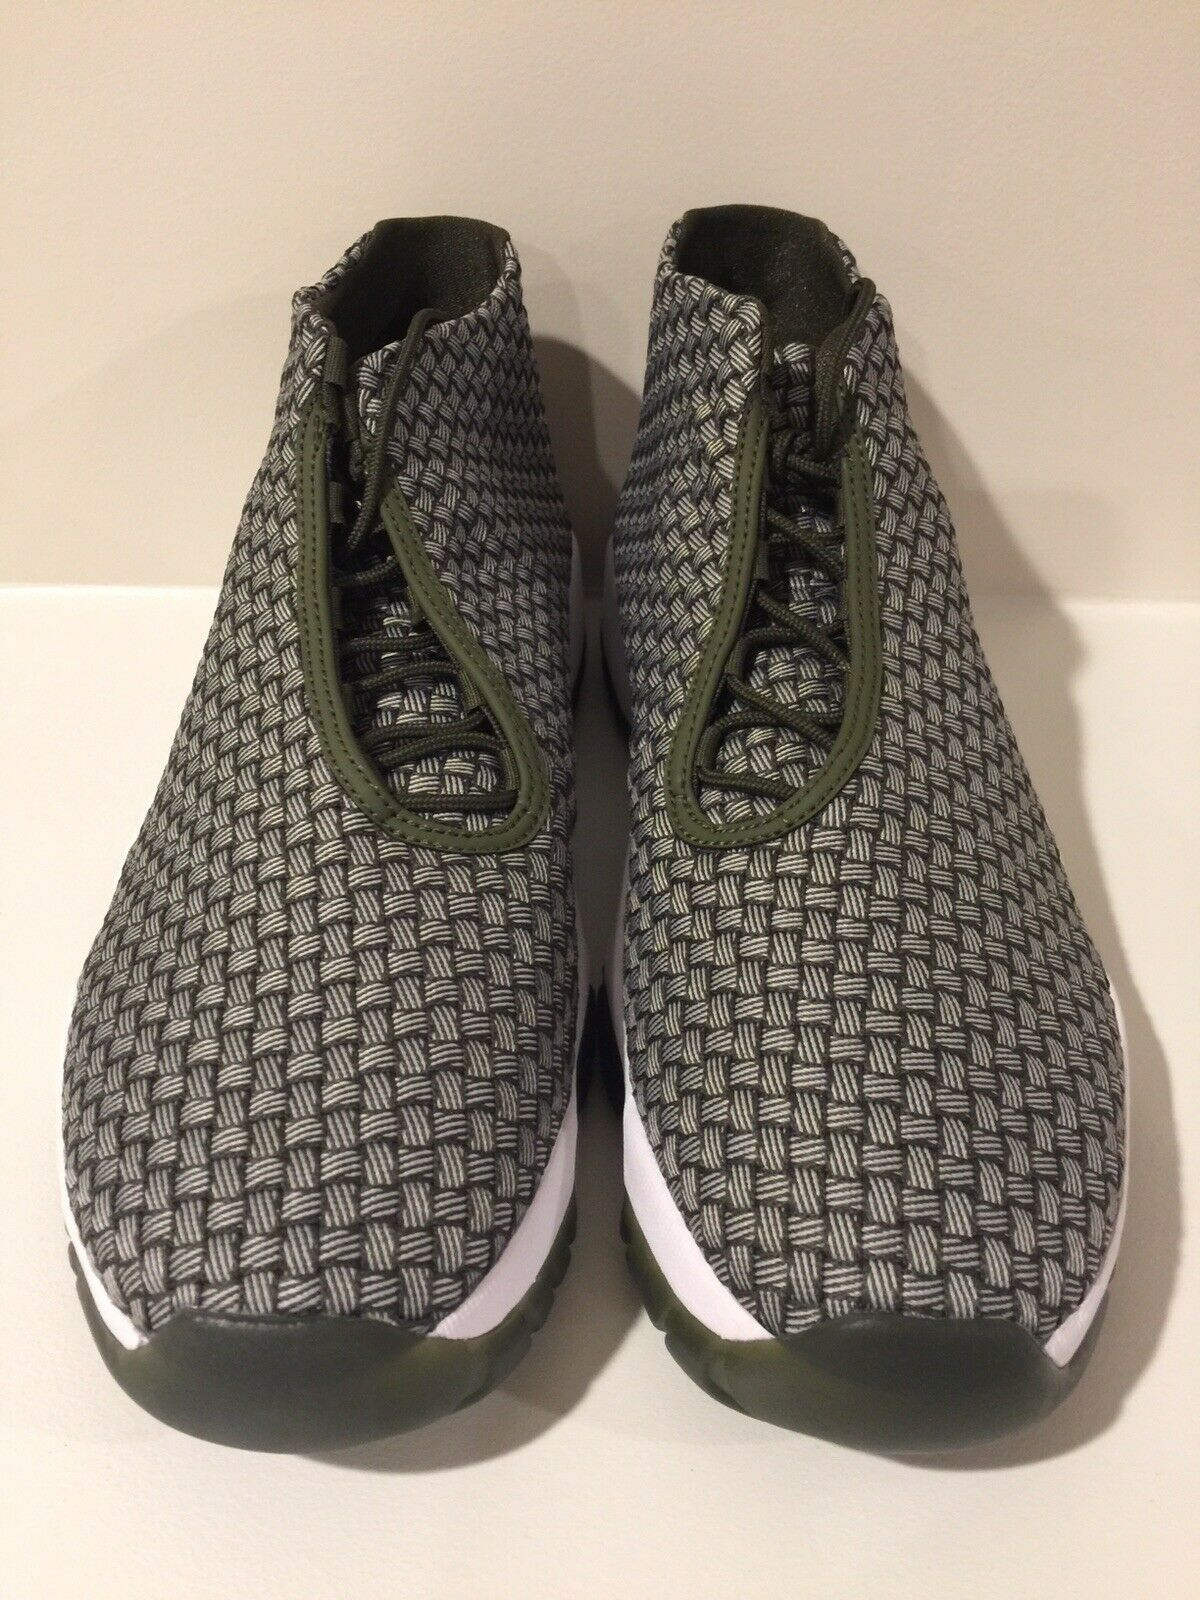 NEW Nike Men's Air Jordan Future 656503 305 Olive Dark  Size 13 Woven w o box